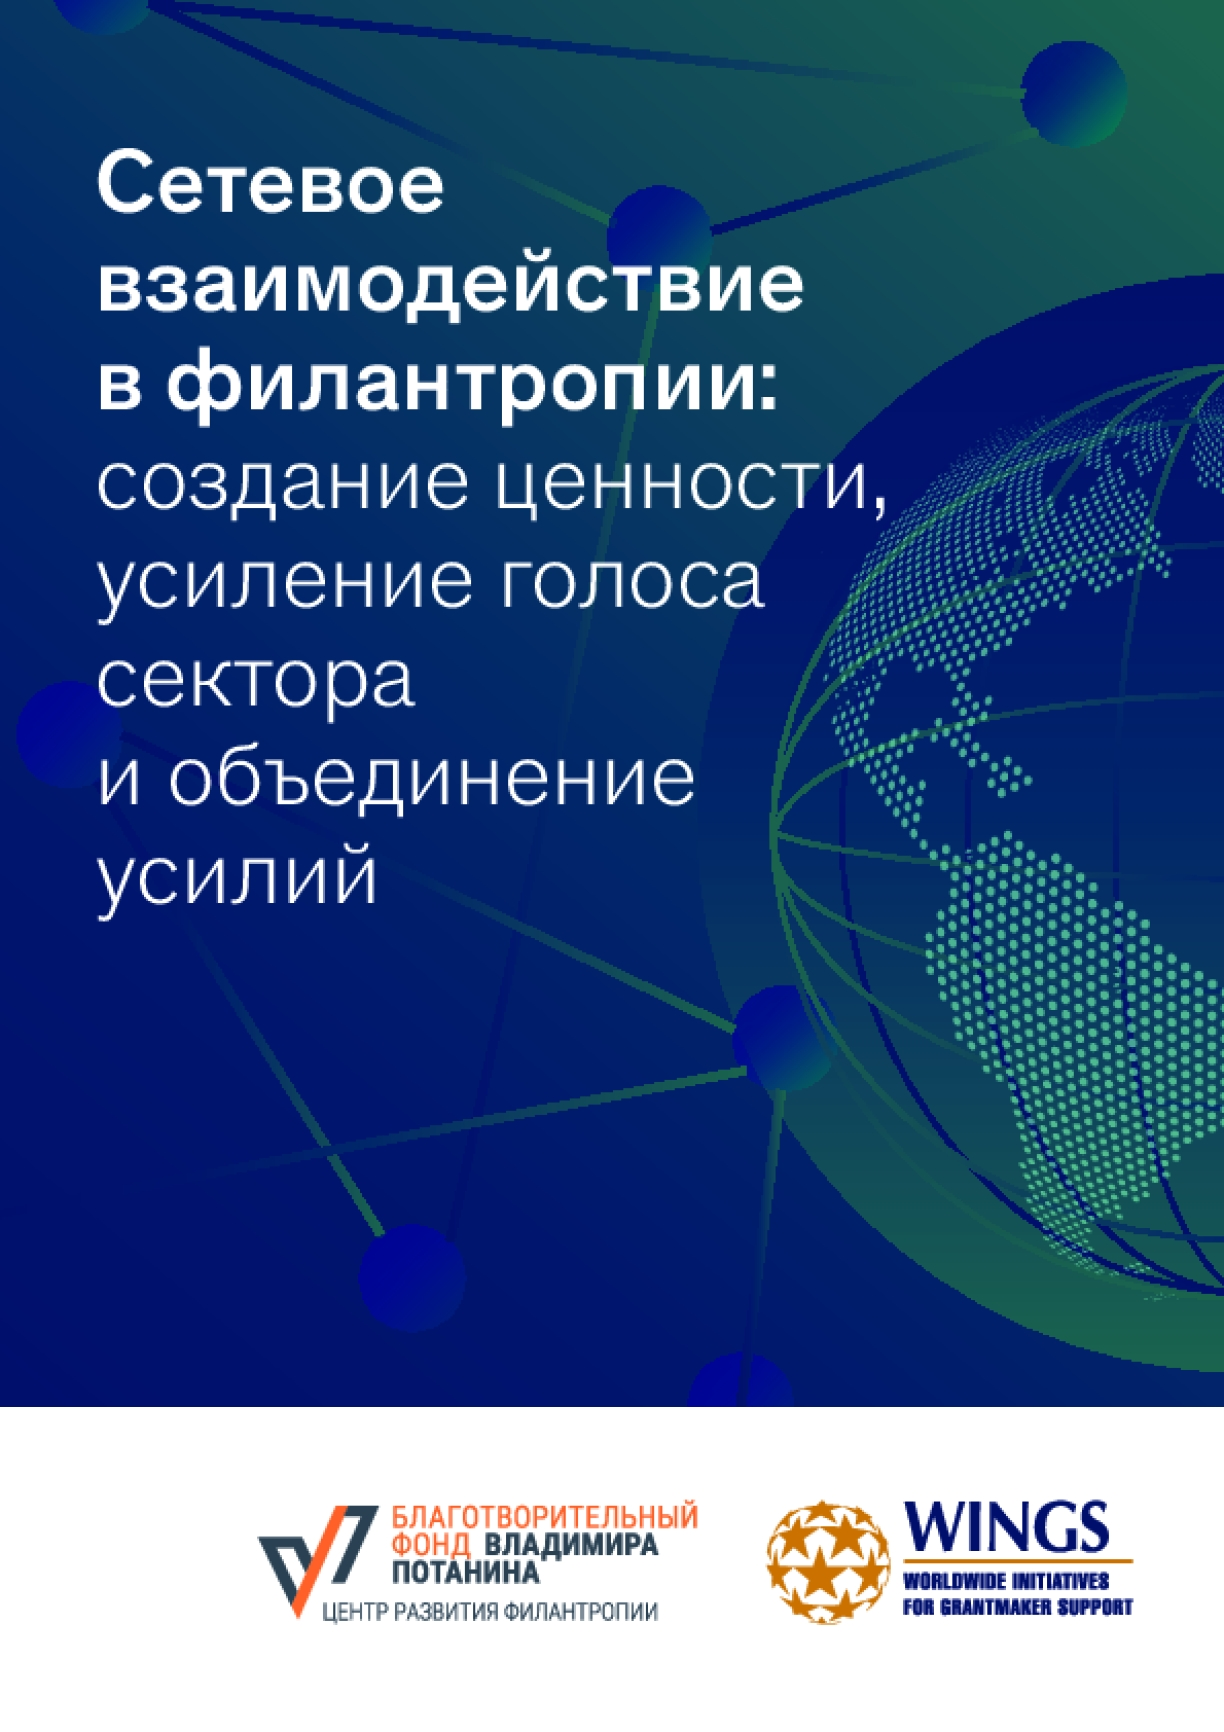 Philanthropy Networks: Creating Value, Voice and Collective Impact - Russian Version